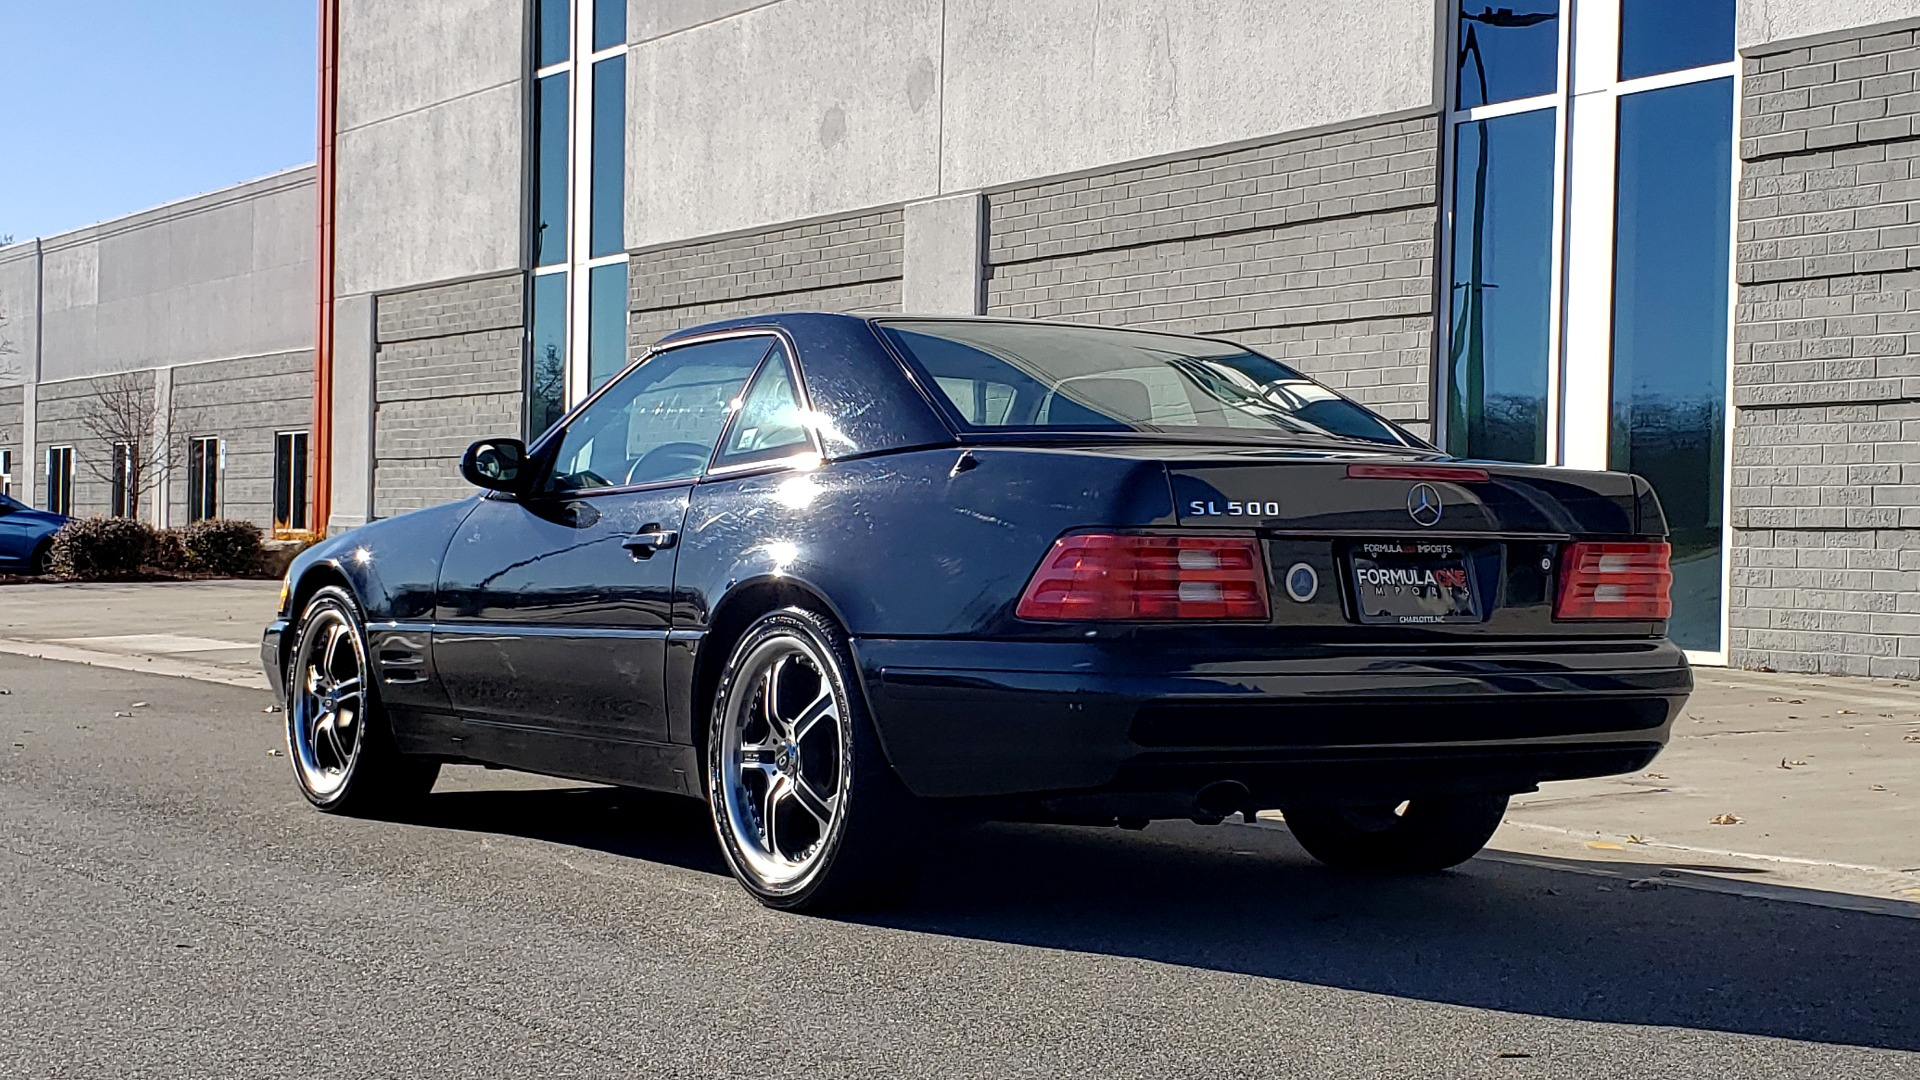 Used 1999 Mercedes-Benz SL-CLASS ROADSTER / 5.0L V8 (302HP) / 5-SPD AUTO / 18IN WHEELS for sale $9,995 at Formula Imports in Charlotte NC 28227 3